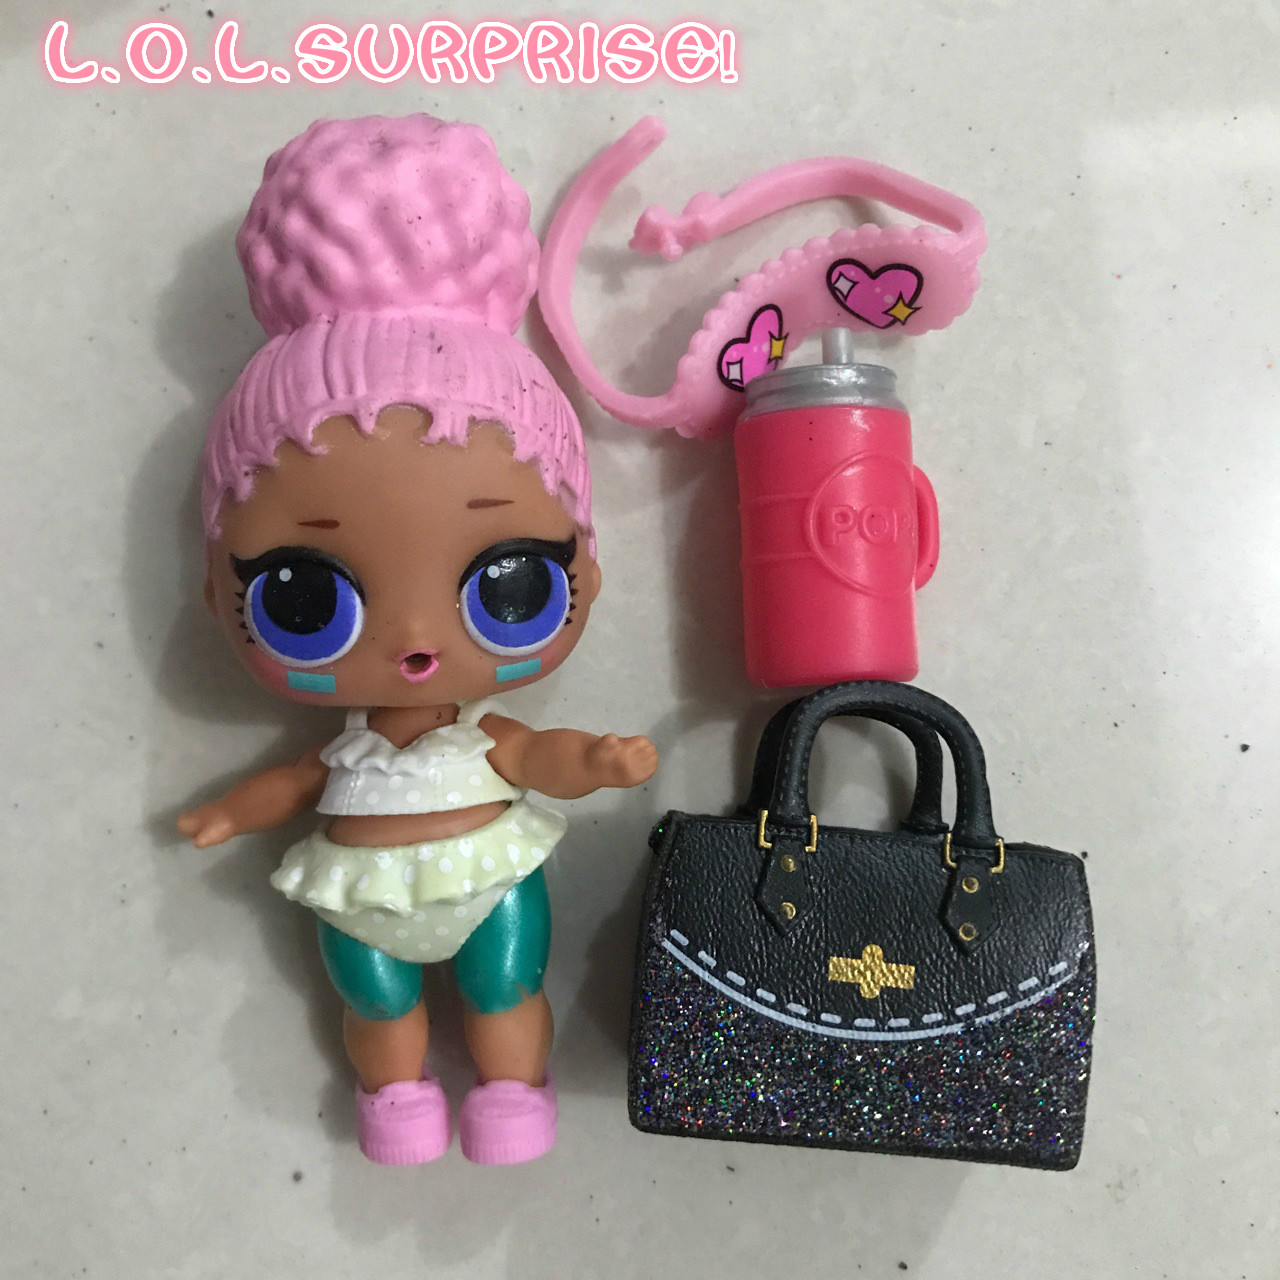 Original  L.O.L.SURPRISE! New Lol Dolls Toys Surprise Doll Generation Action Figure Model Doll Baby Girl Kids Gift Hot Toys